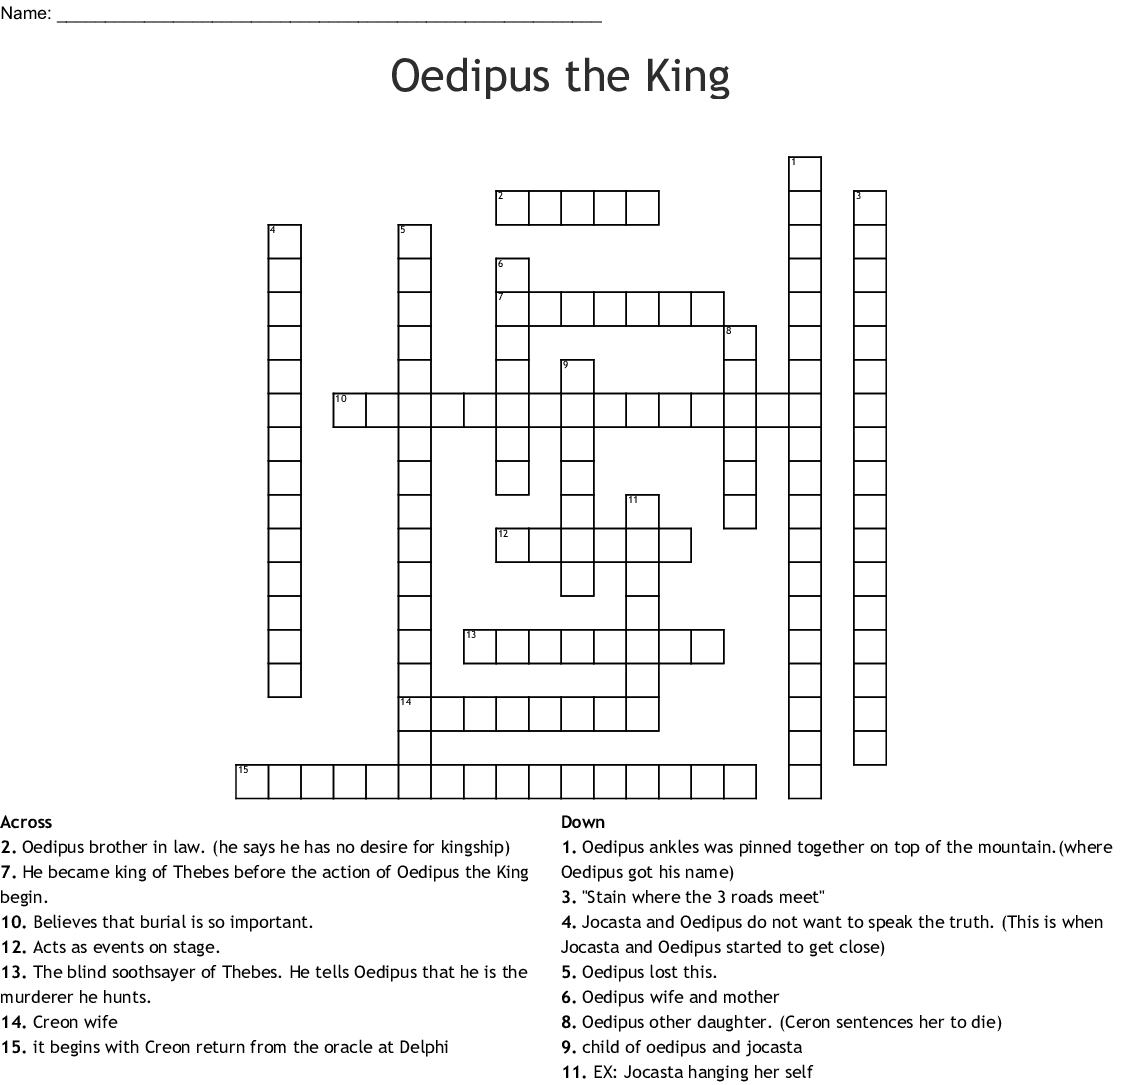 Oedipus The King Word Search